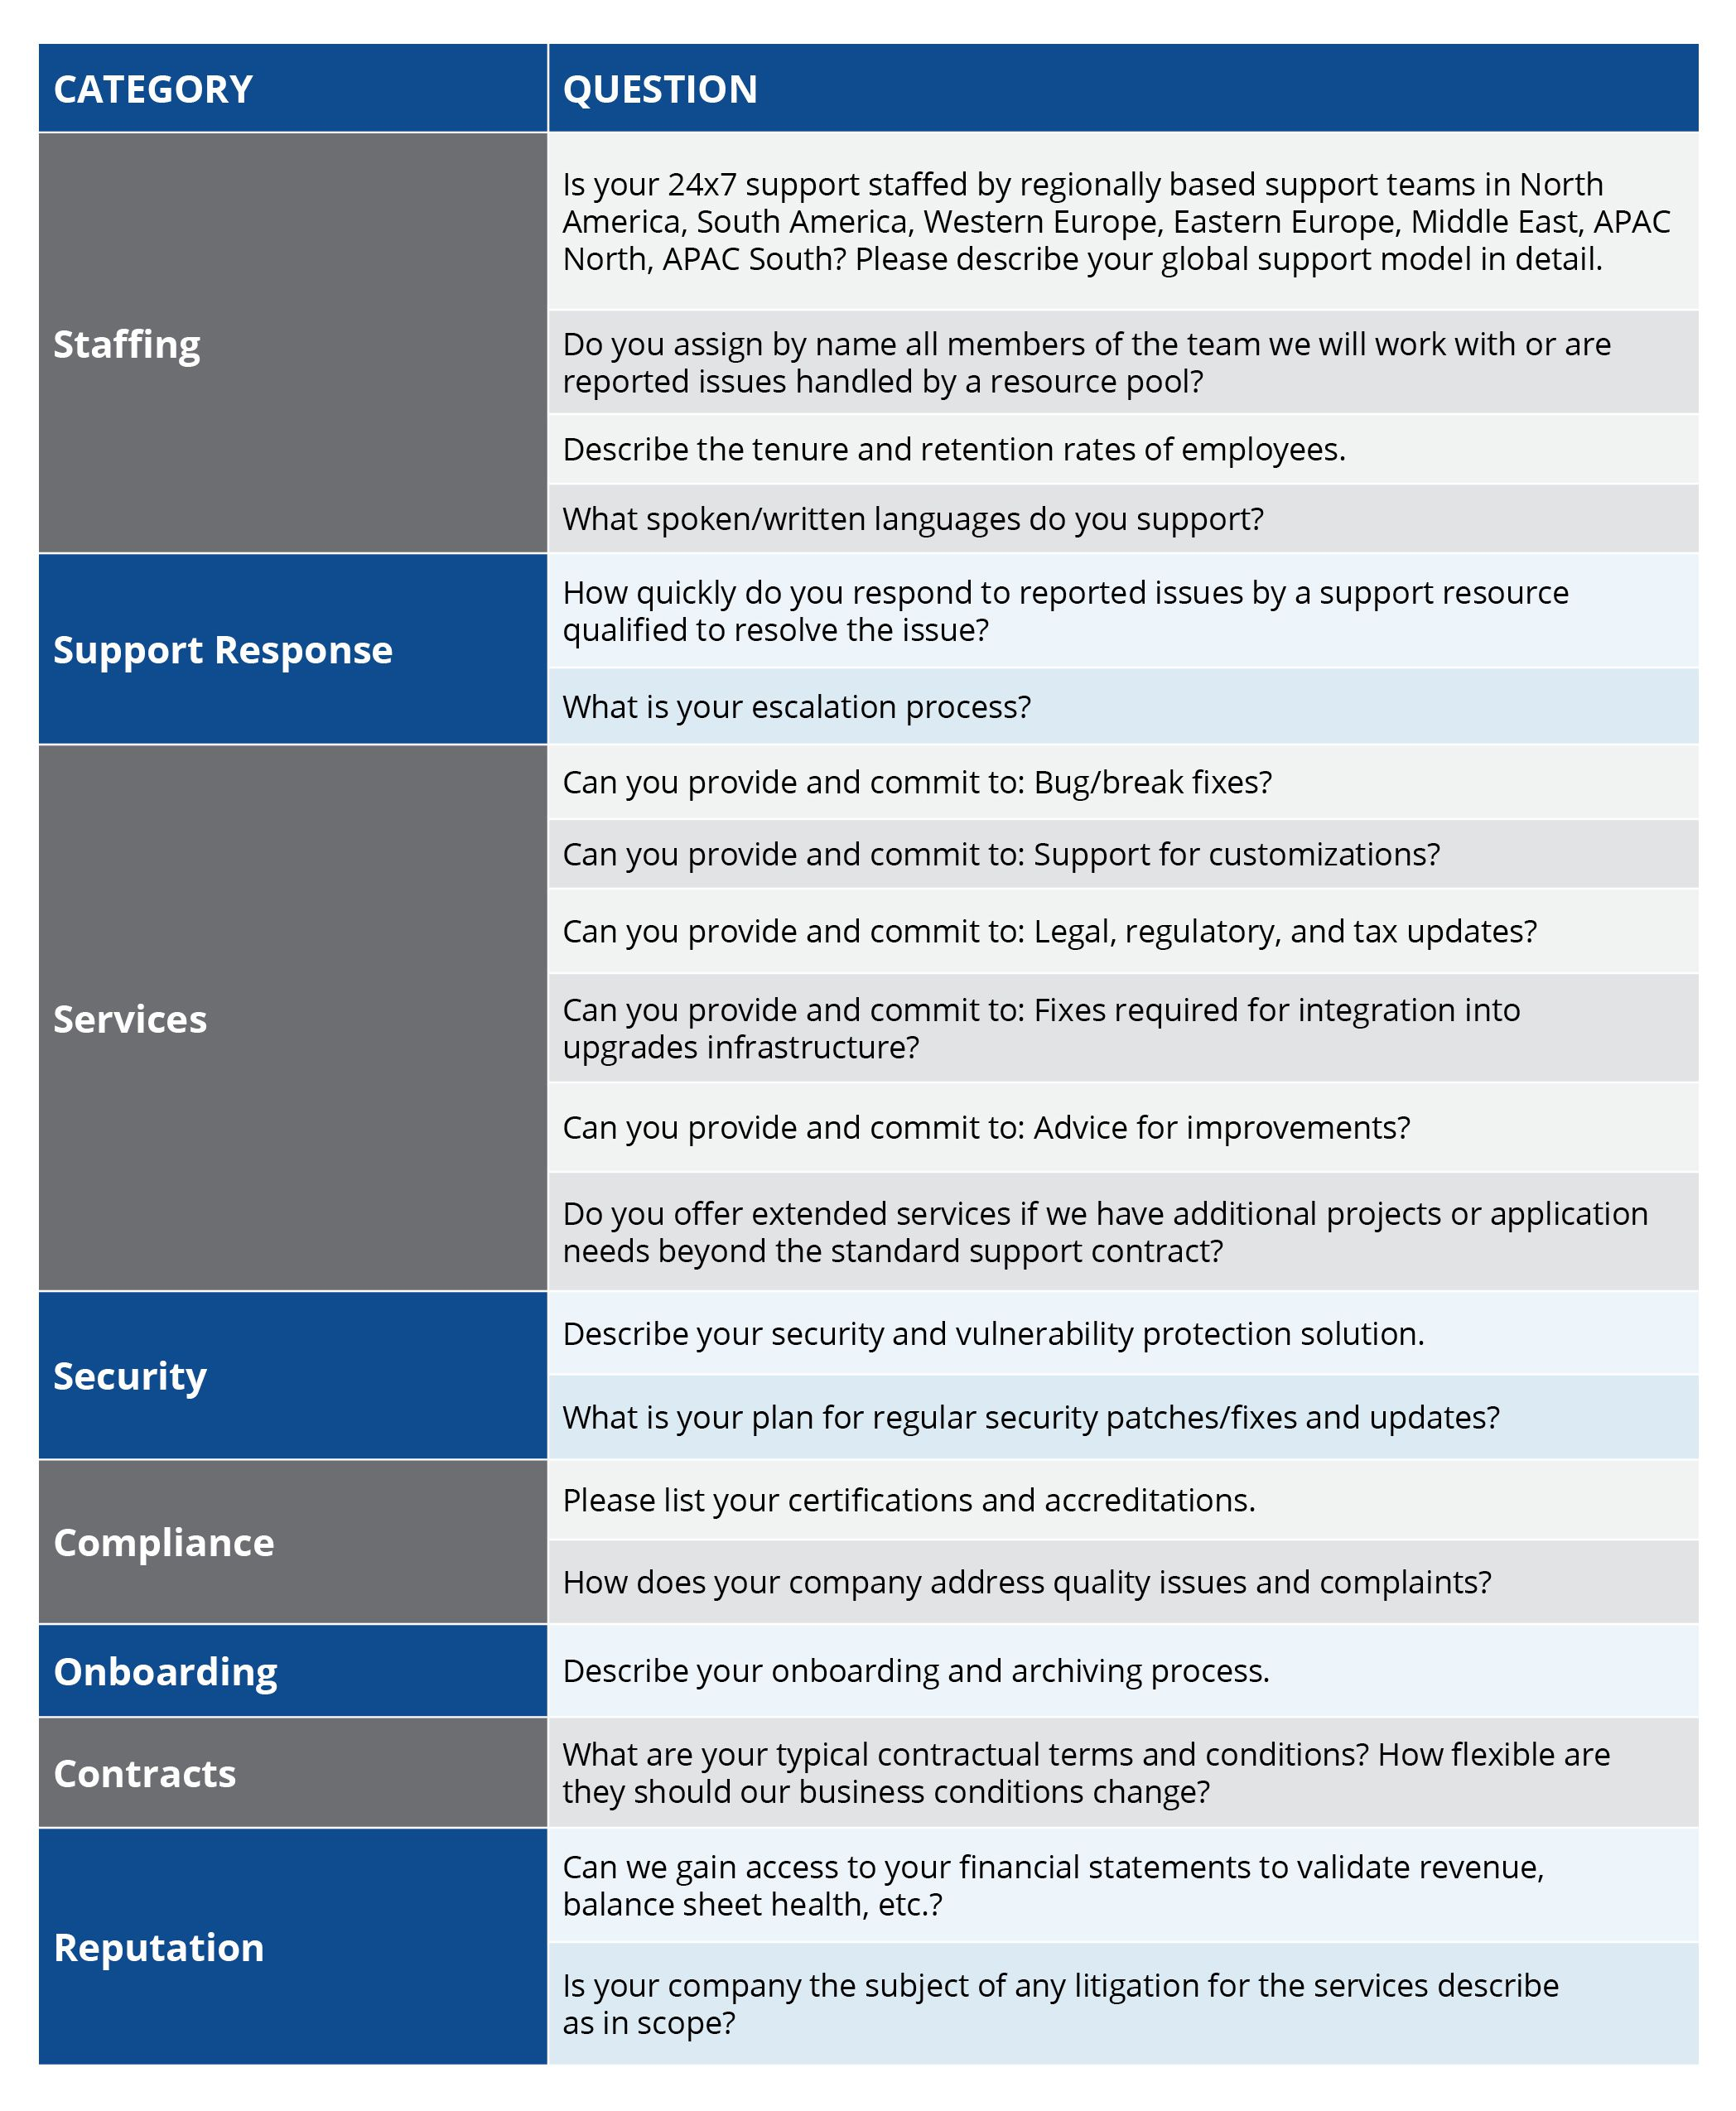 007 Magnificent Request For Proposal Template Australia High Resolution Full